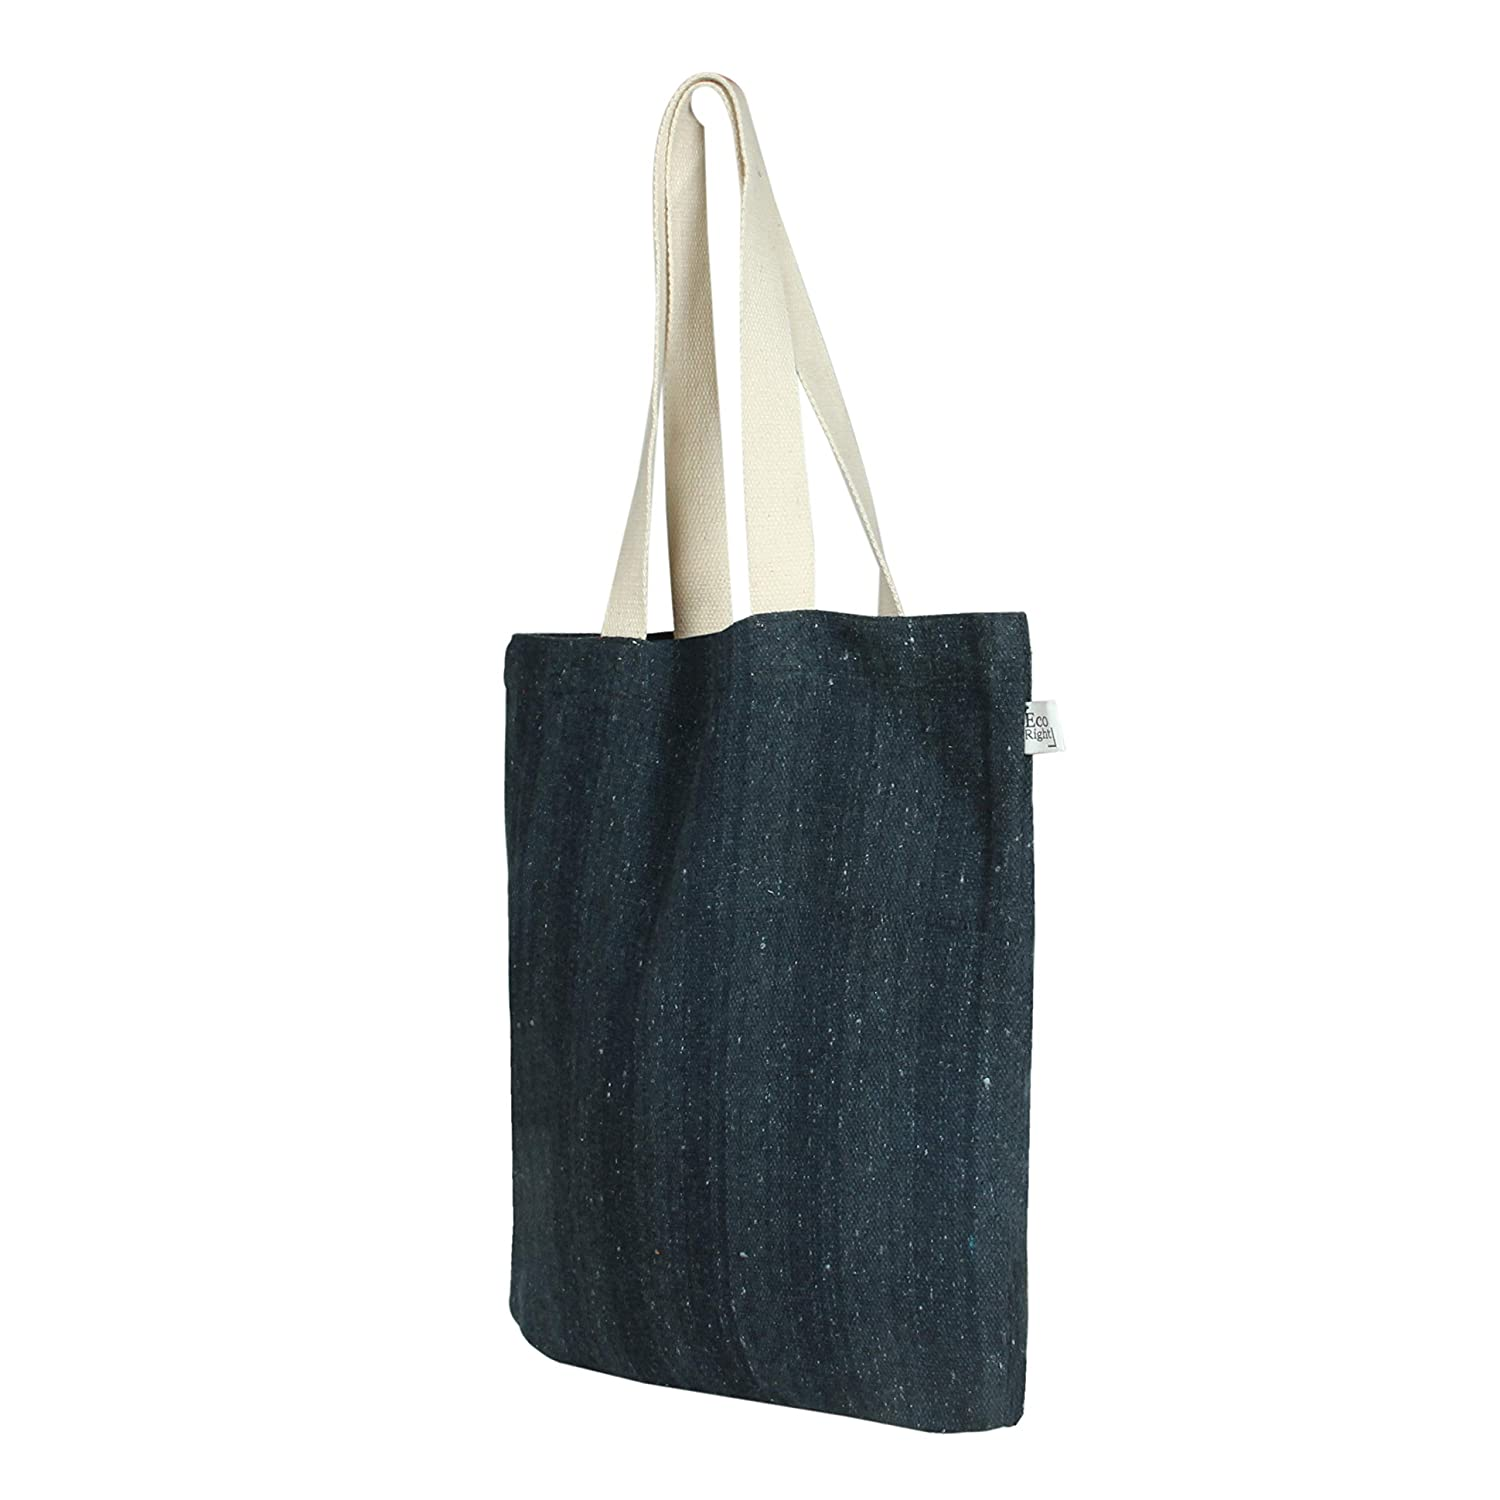 EcoRight Reusable Grocery Bags, Grocery Tote Foldable made of Cotton - 100% Eco Friendly - Black